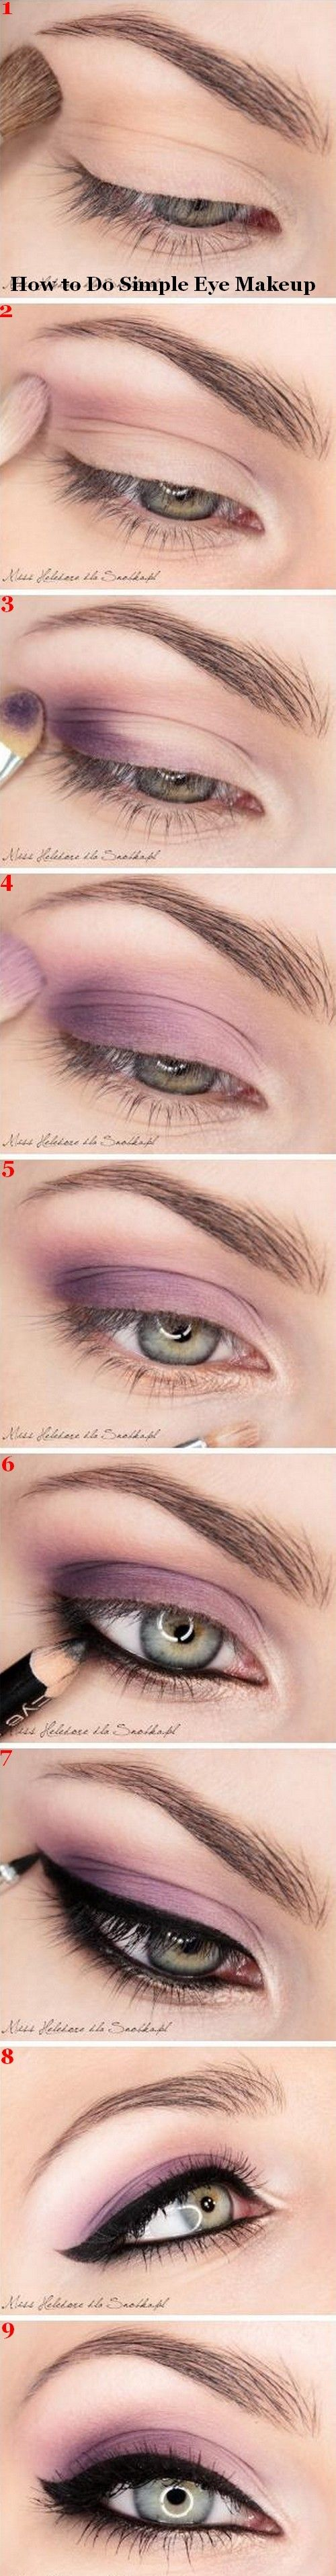 How to do simple eye makeup.